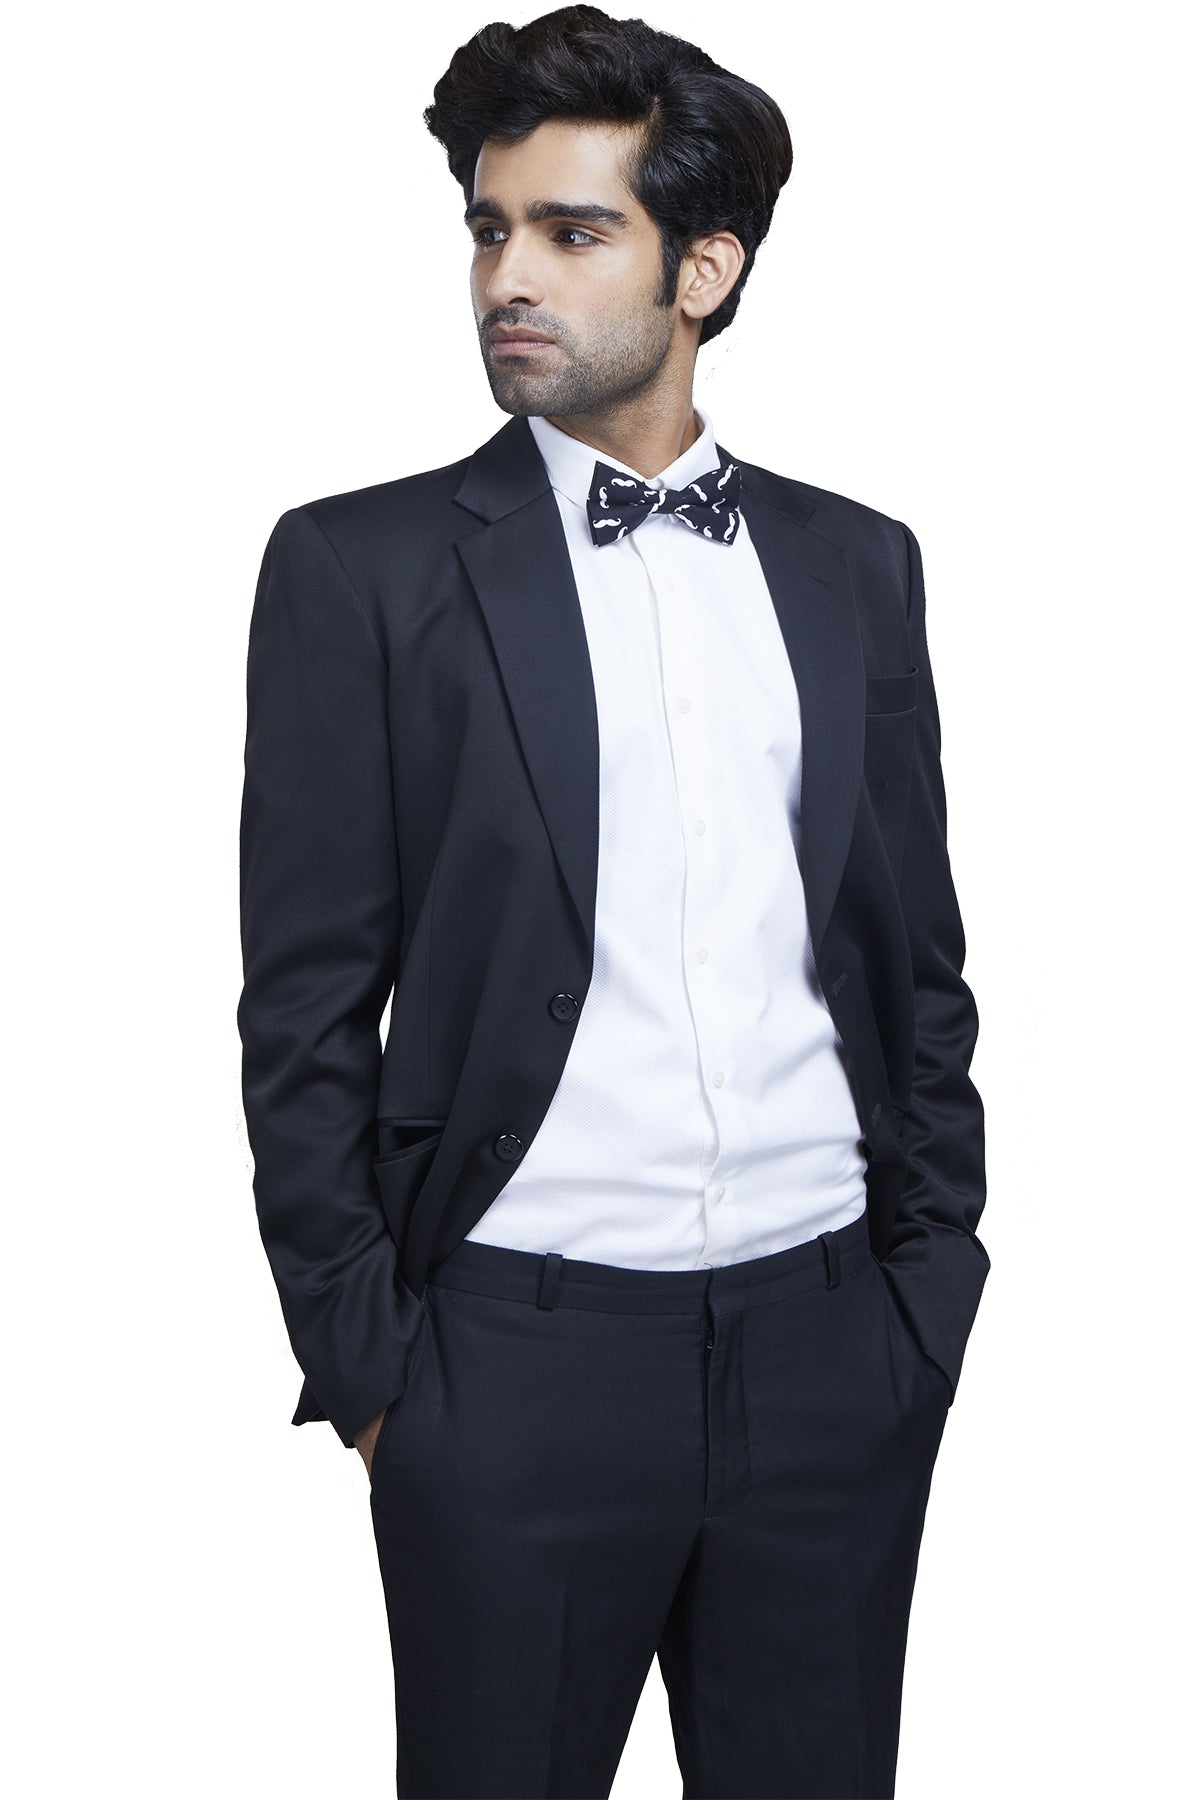 Quintessential plain black formal suit jacket in imported polyester blend